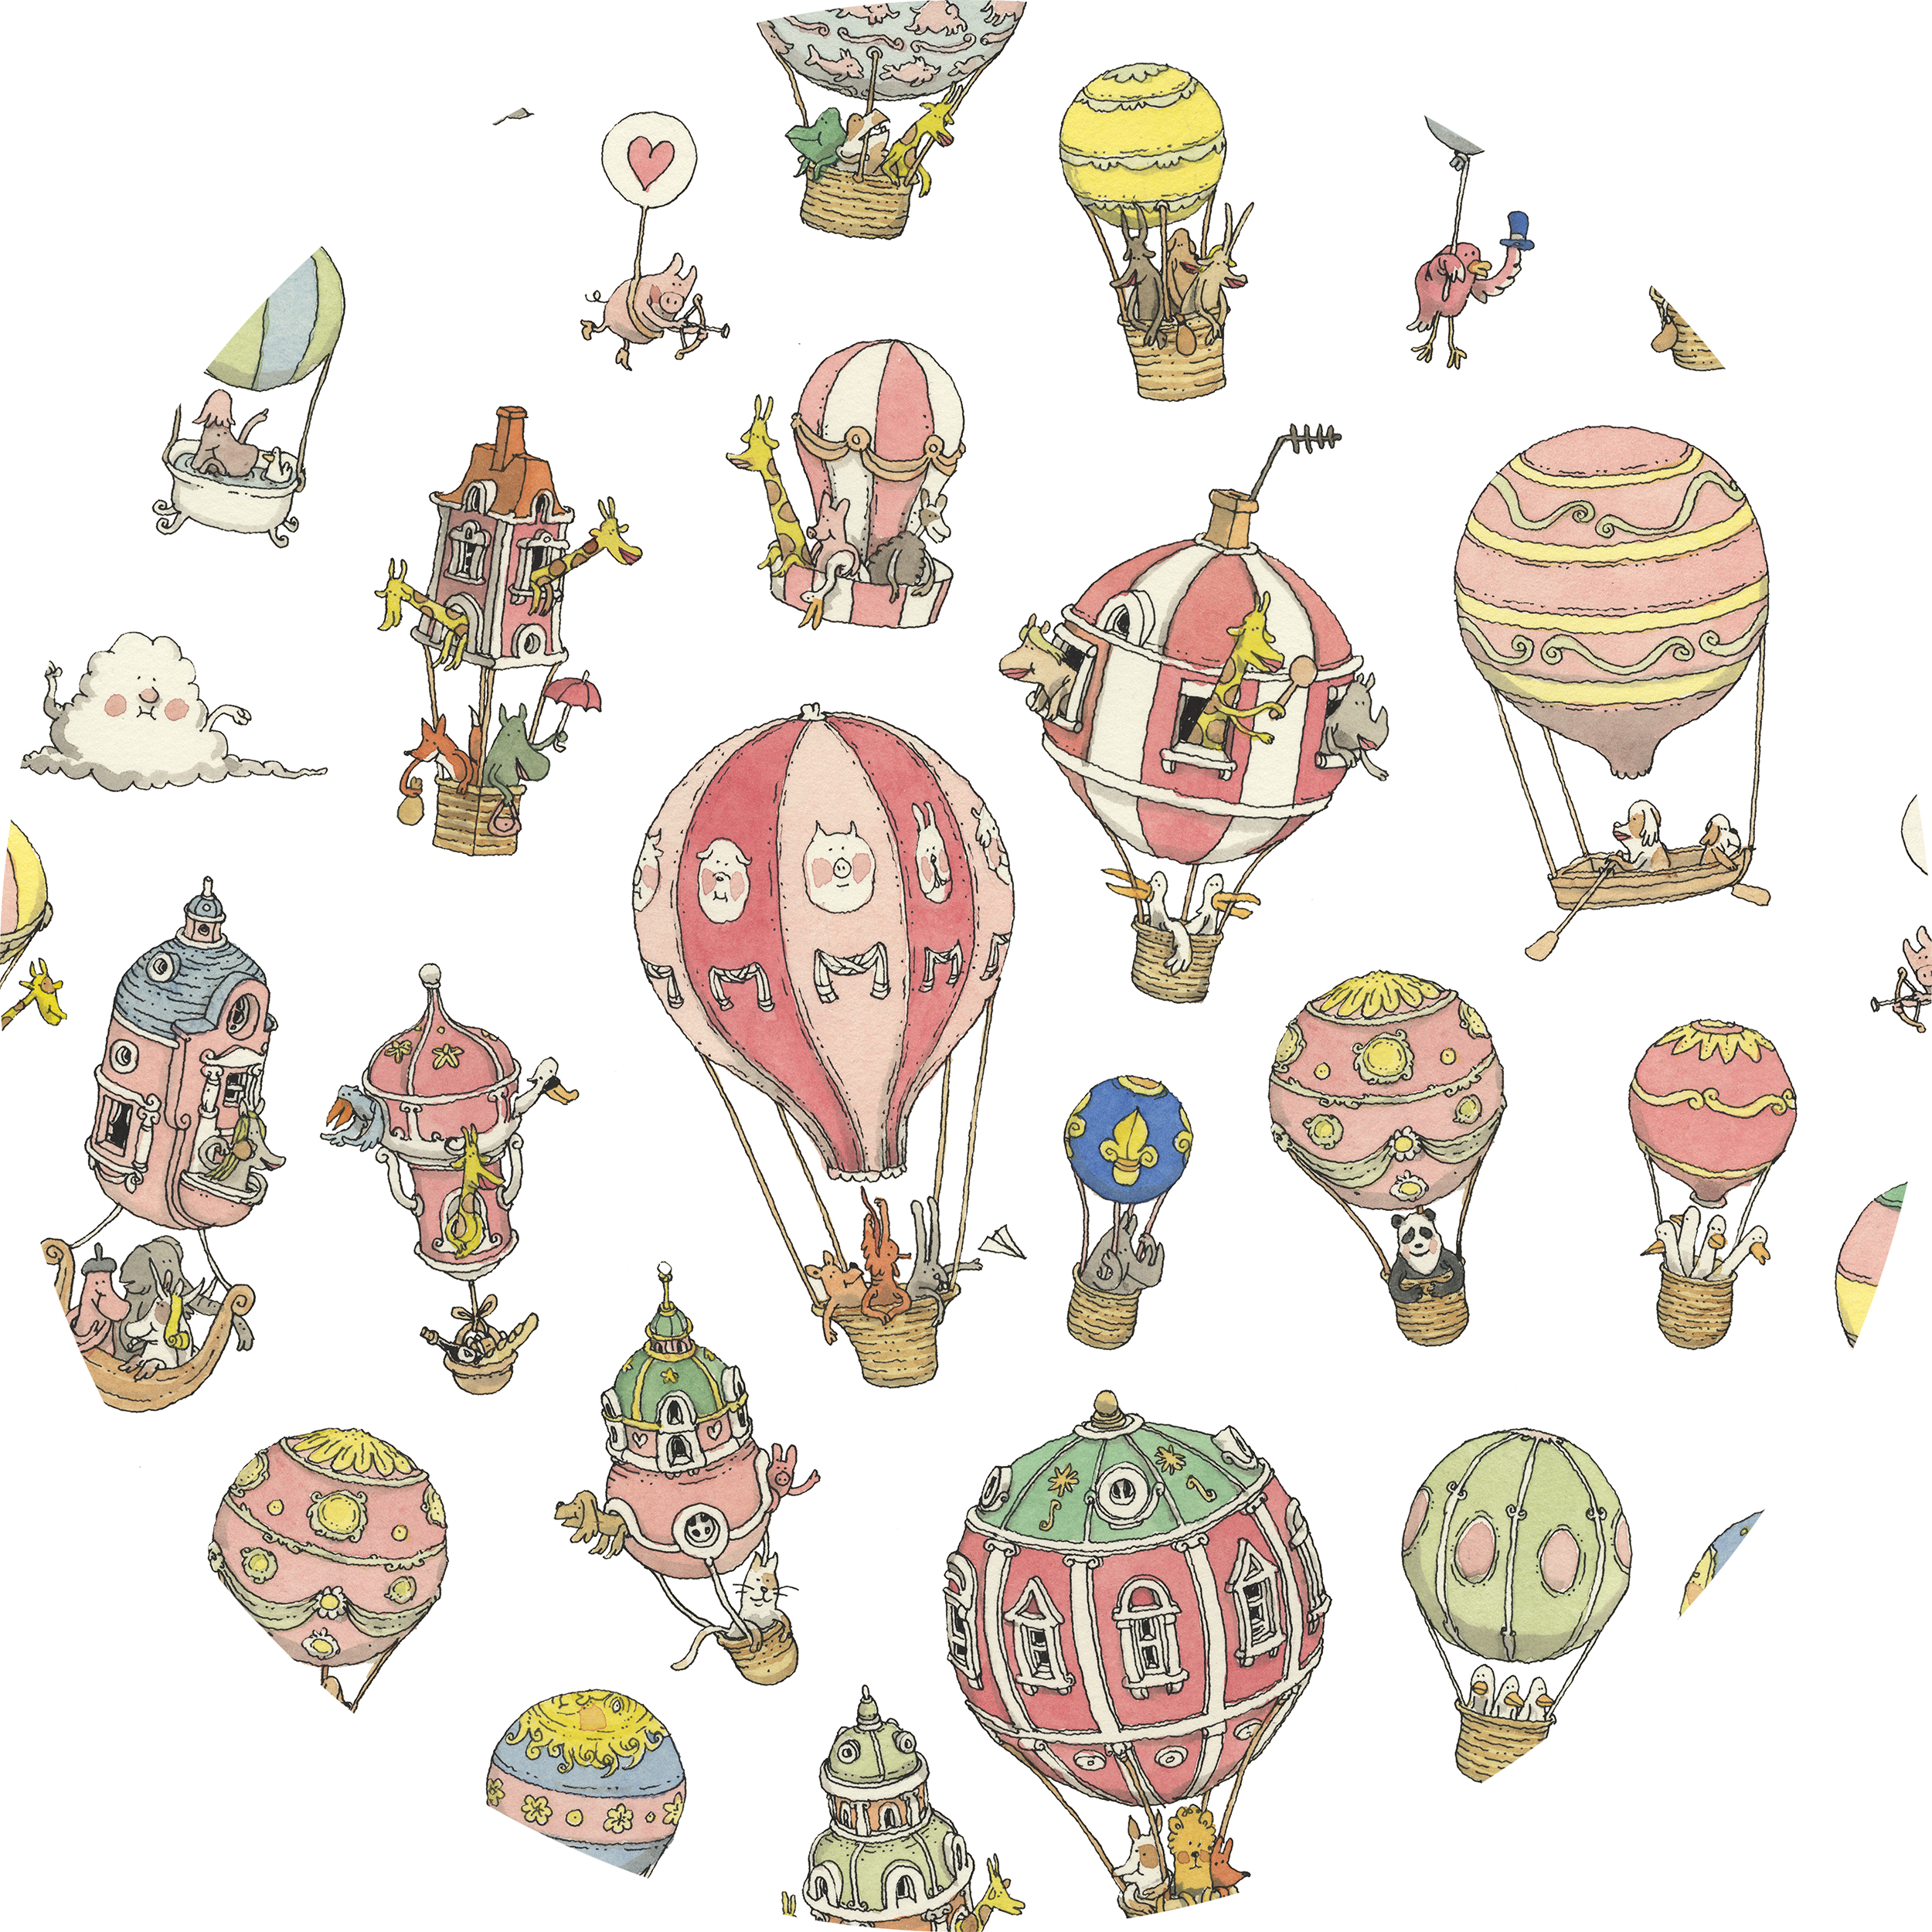 Friends Family Tree: HOT AIR BALLOONS + FRIENDS & FAMILY